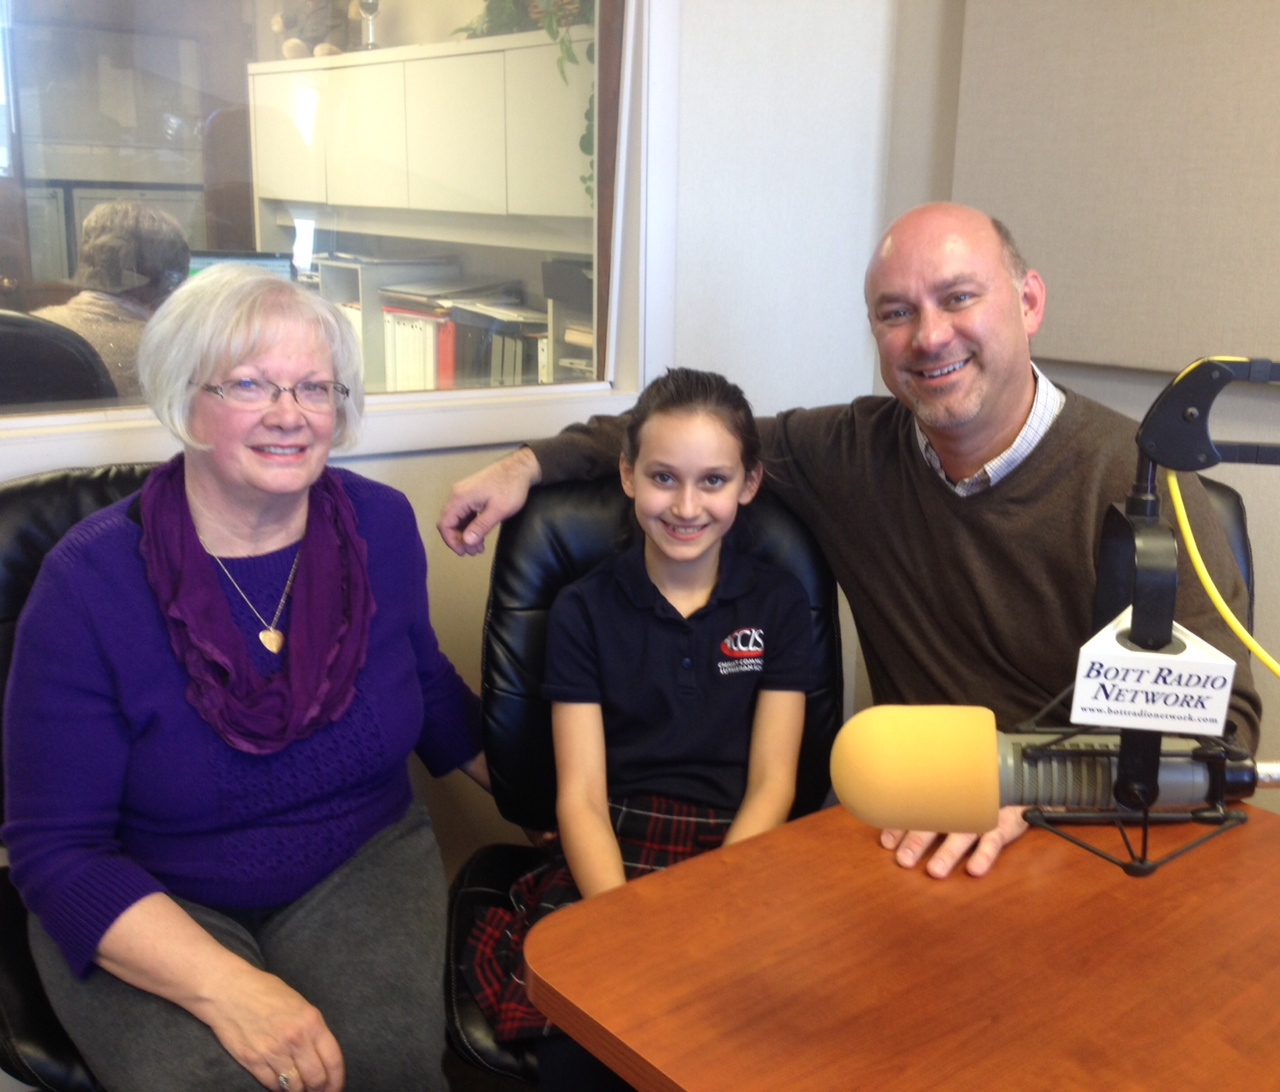 Ken Krueger and his daughter, Lily with Kay in studio